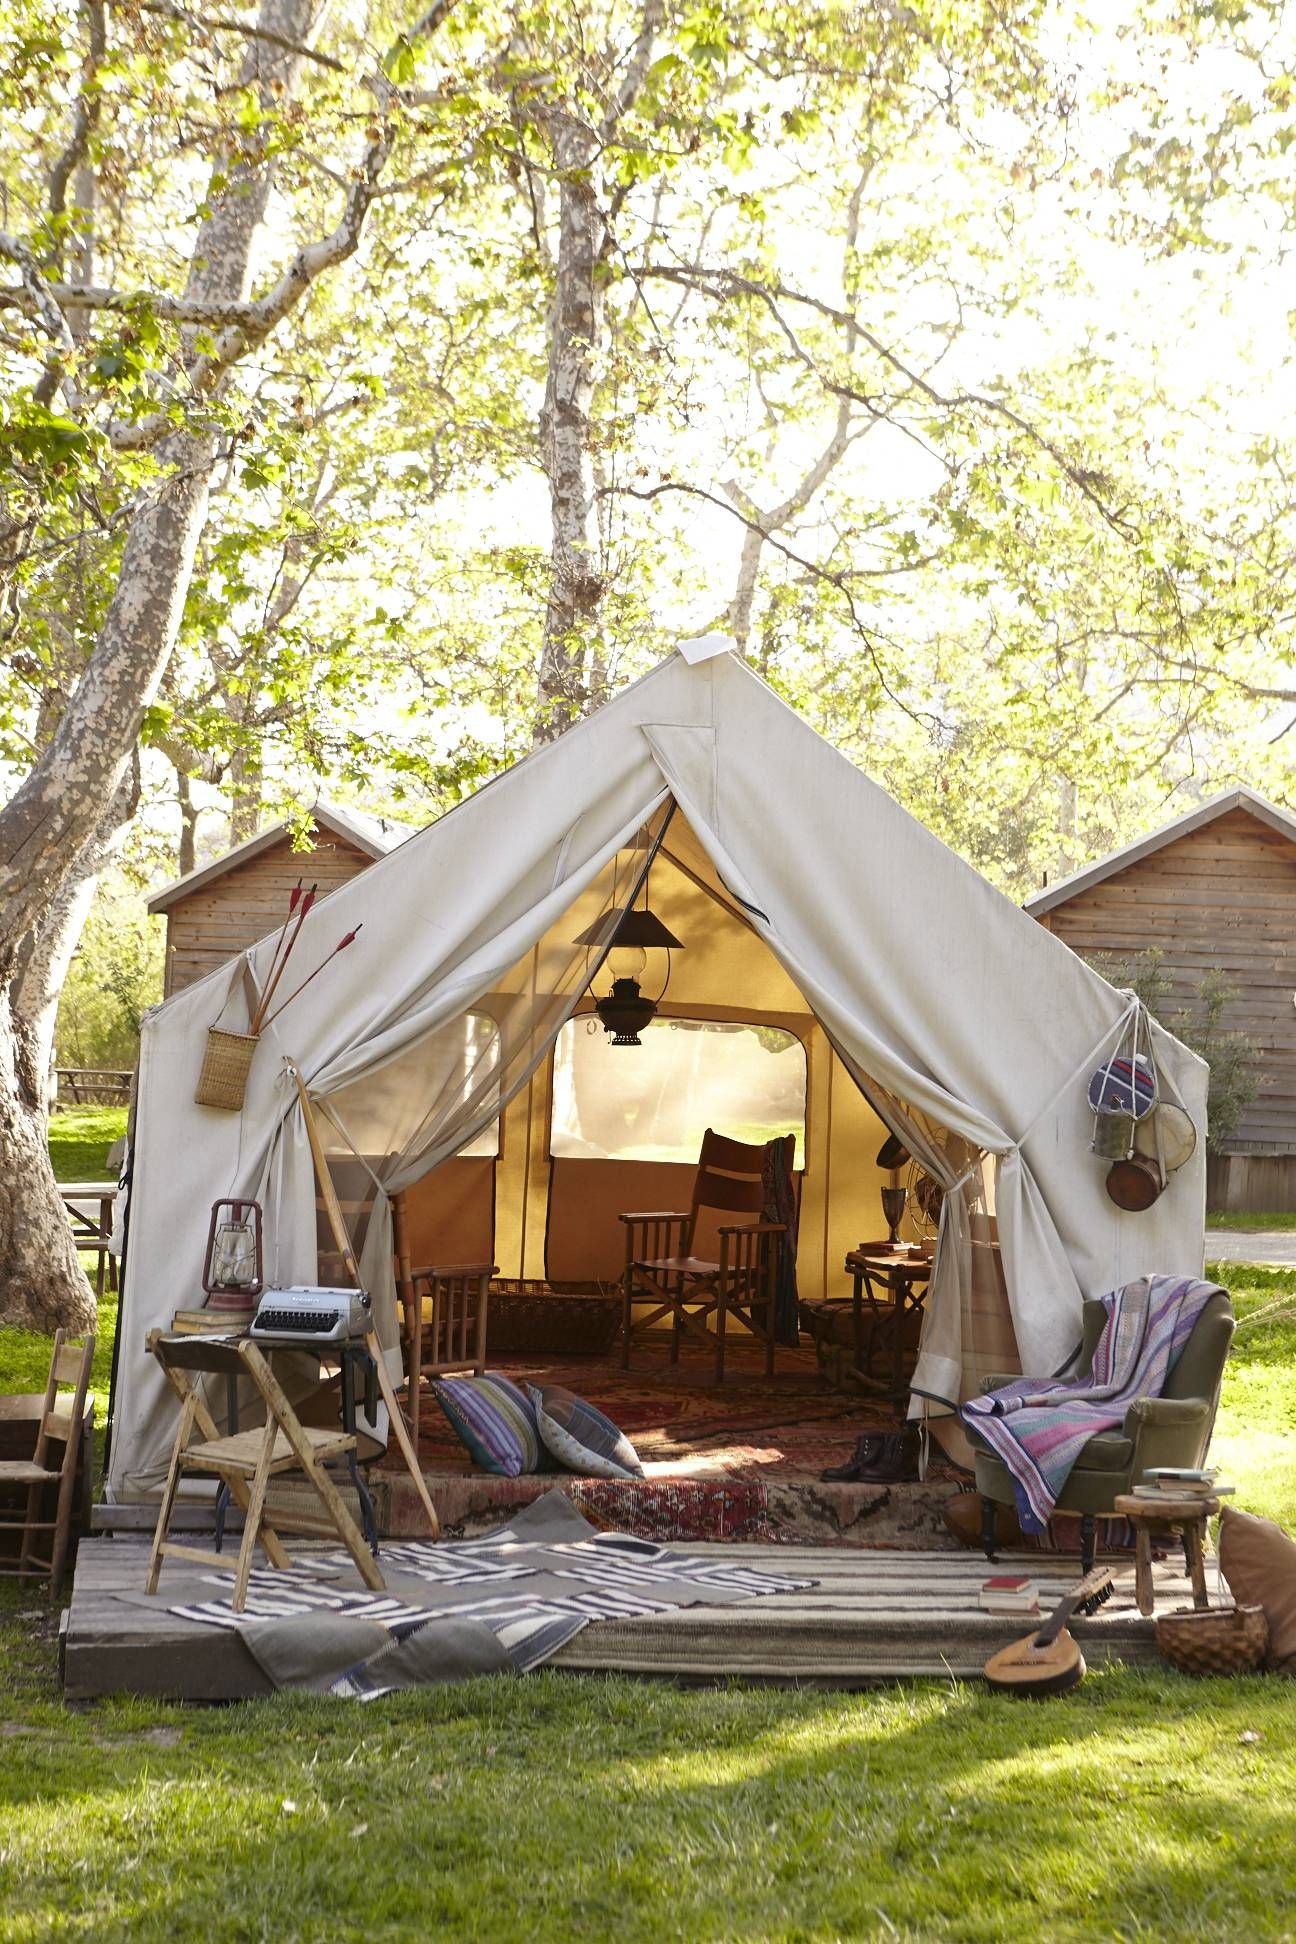 glamping in el capitan, california. *october 2013 trip* need to make